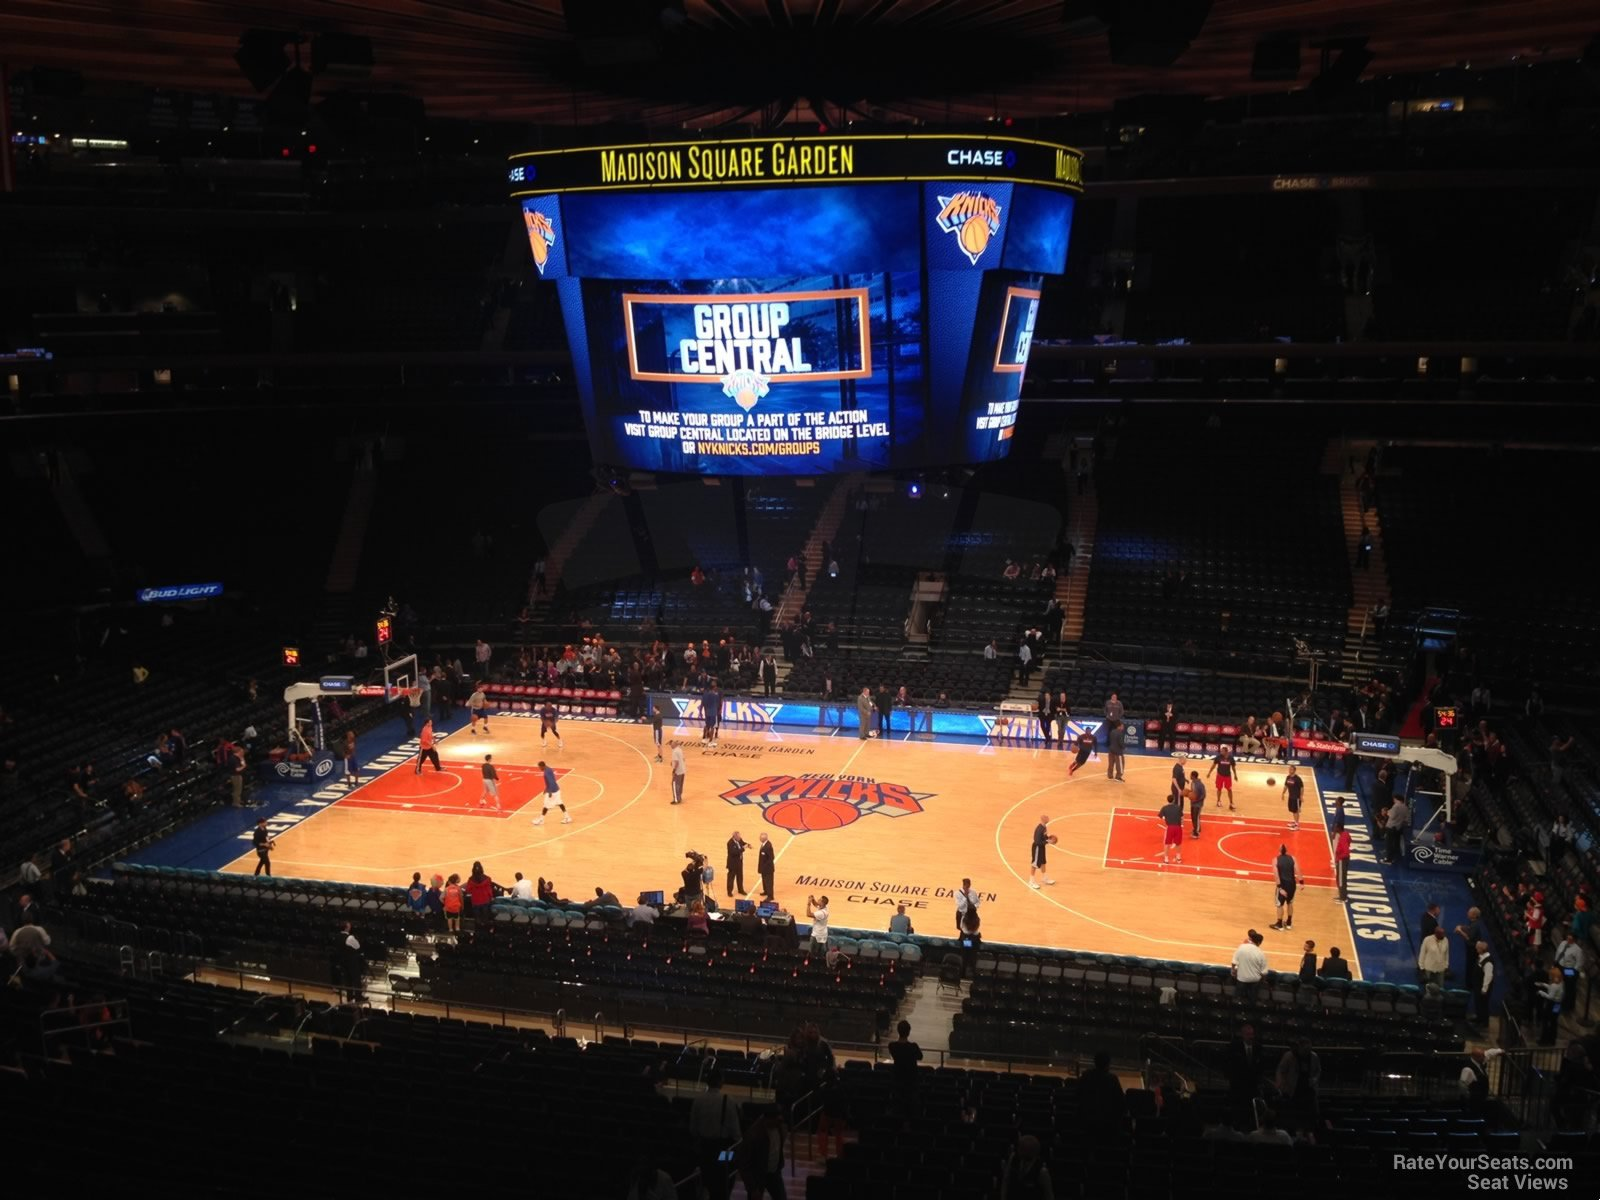 View from Section 225 Row 5 at Madison Square Garden